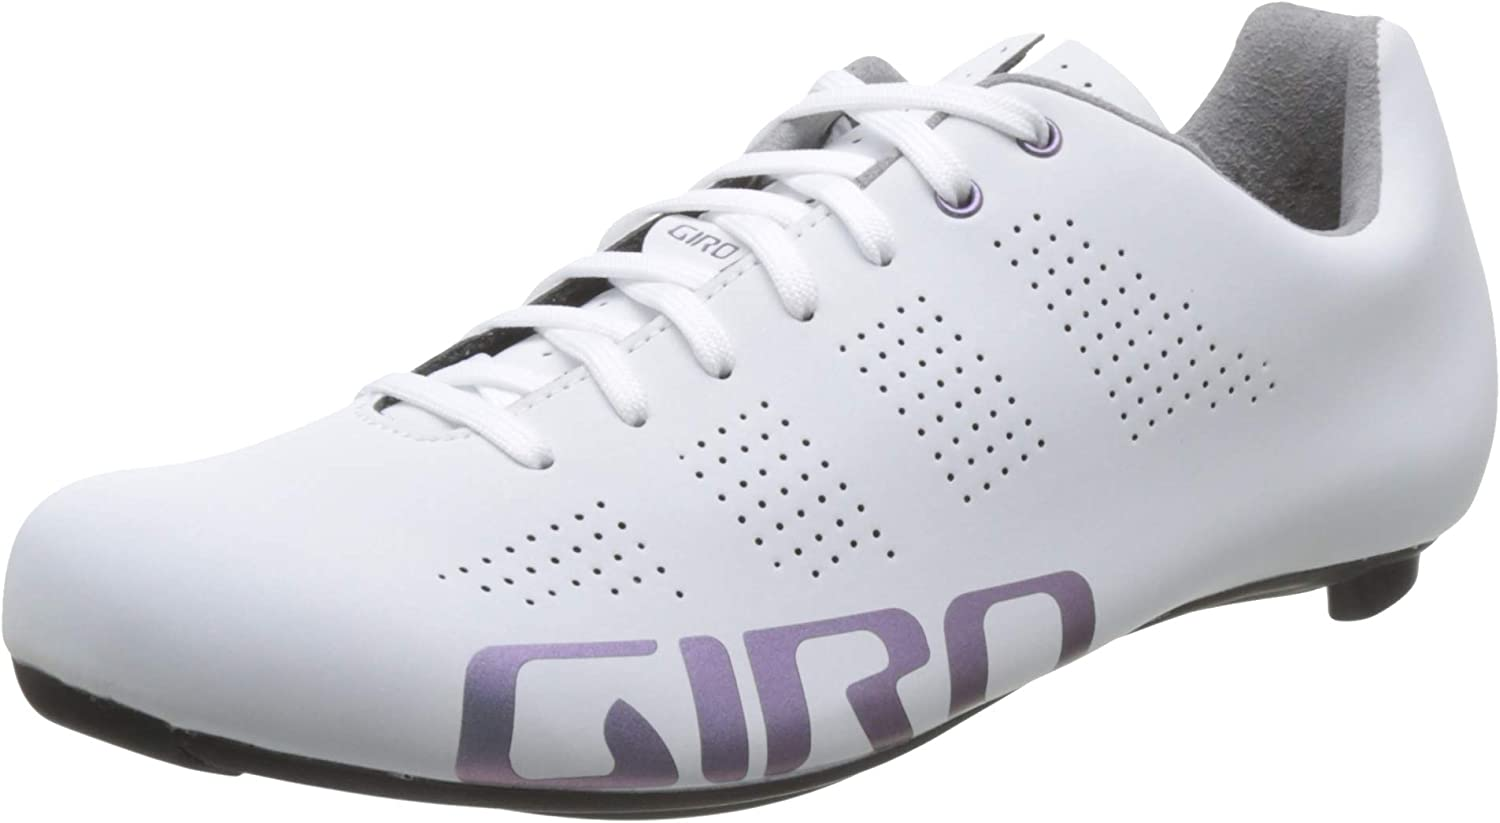 Giro Empire Acc Cycling Shoe – Women s